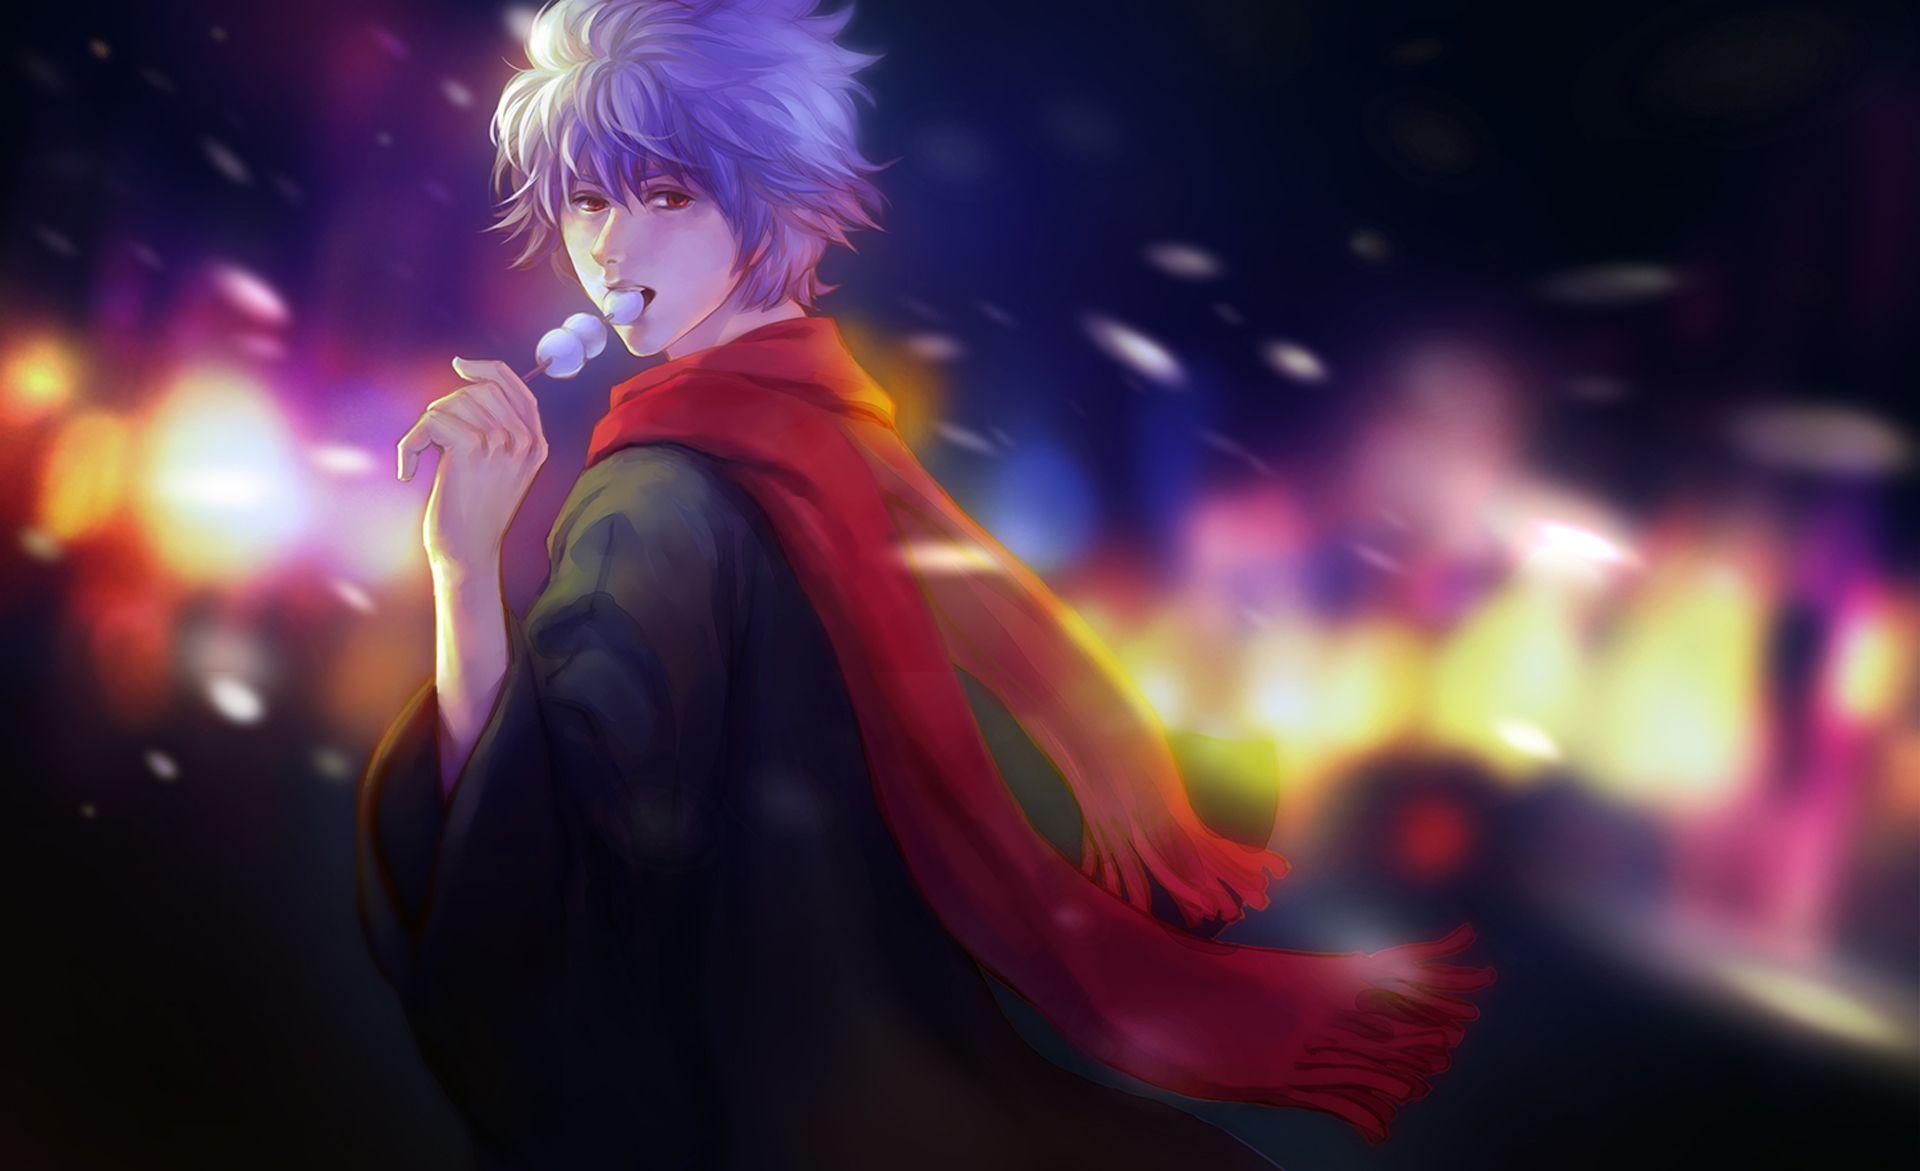 Gintoki Sakata Gintama 1321 HD Wallpapers